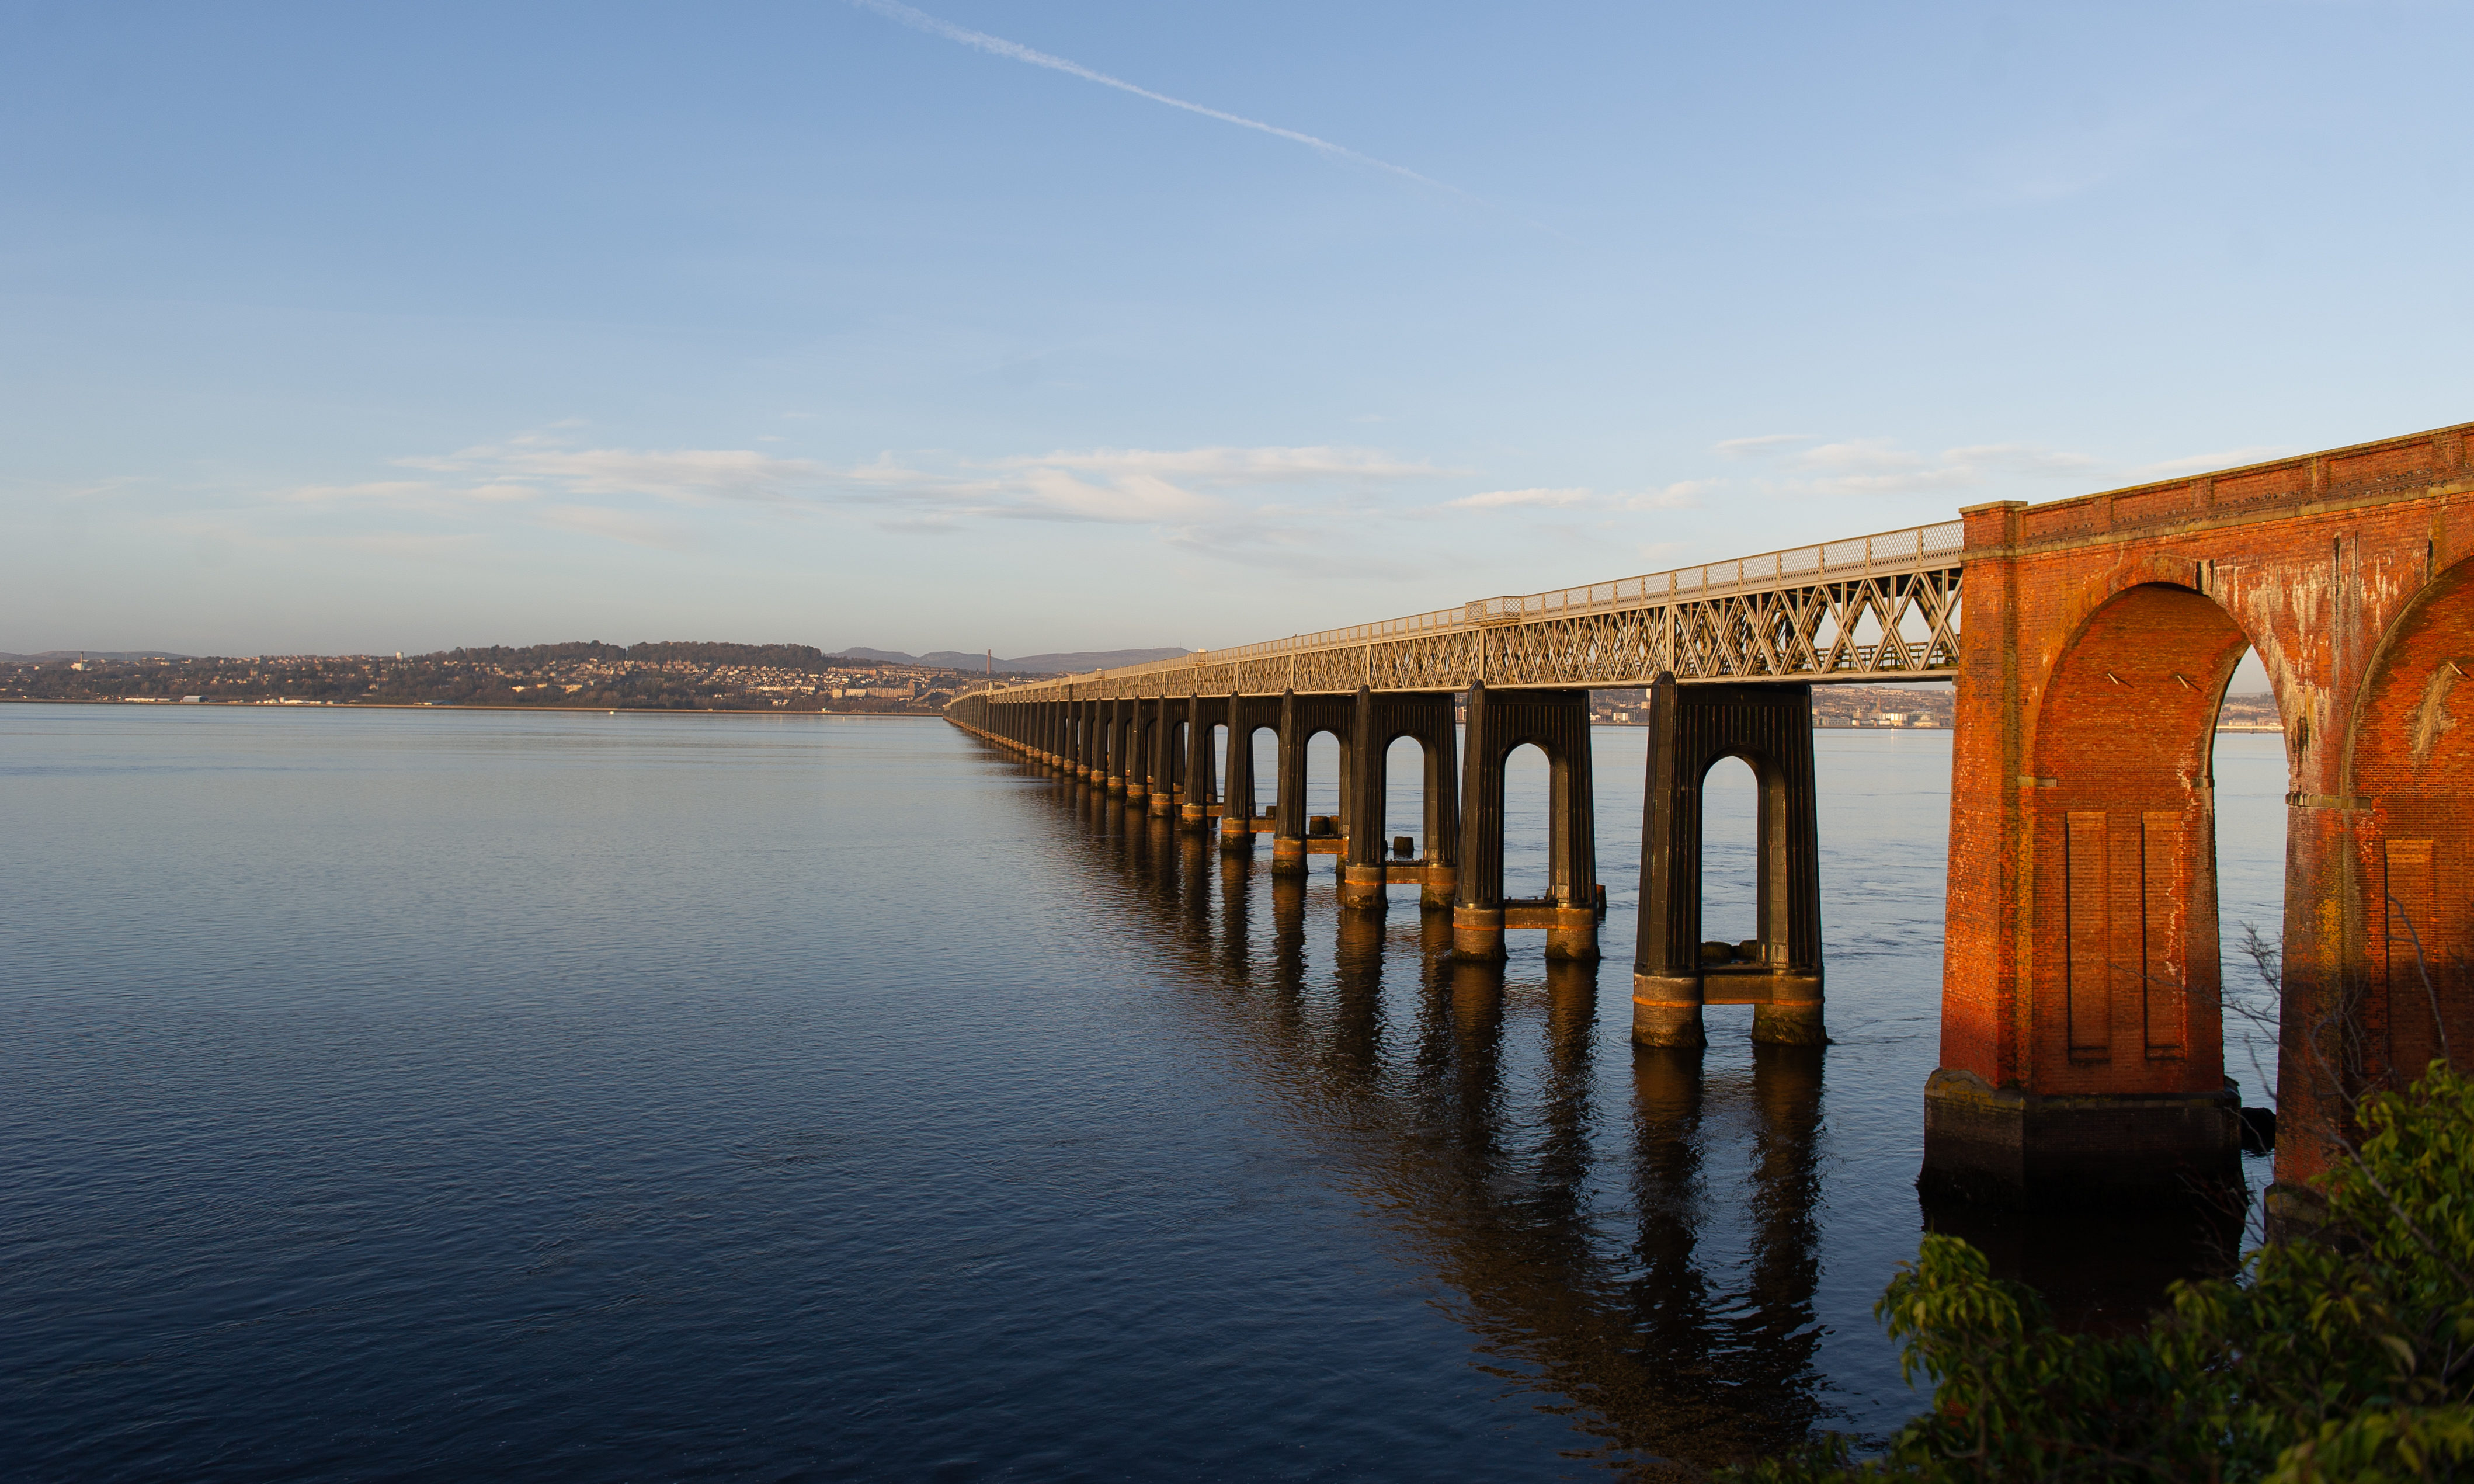 Communities on both sides of the Tay have high levels of infection.